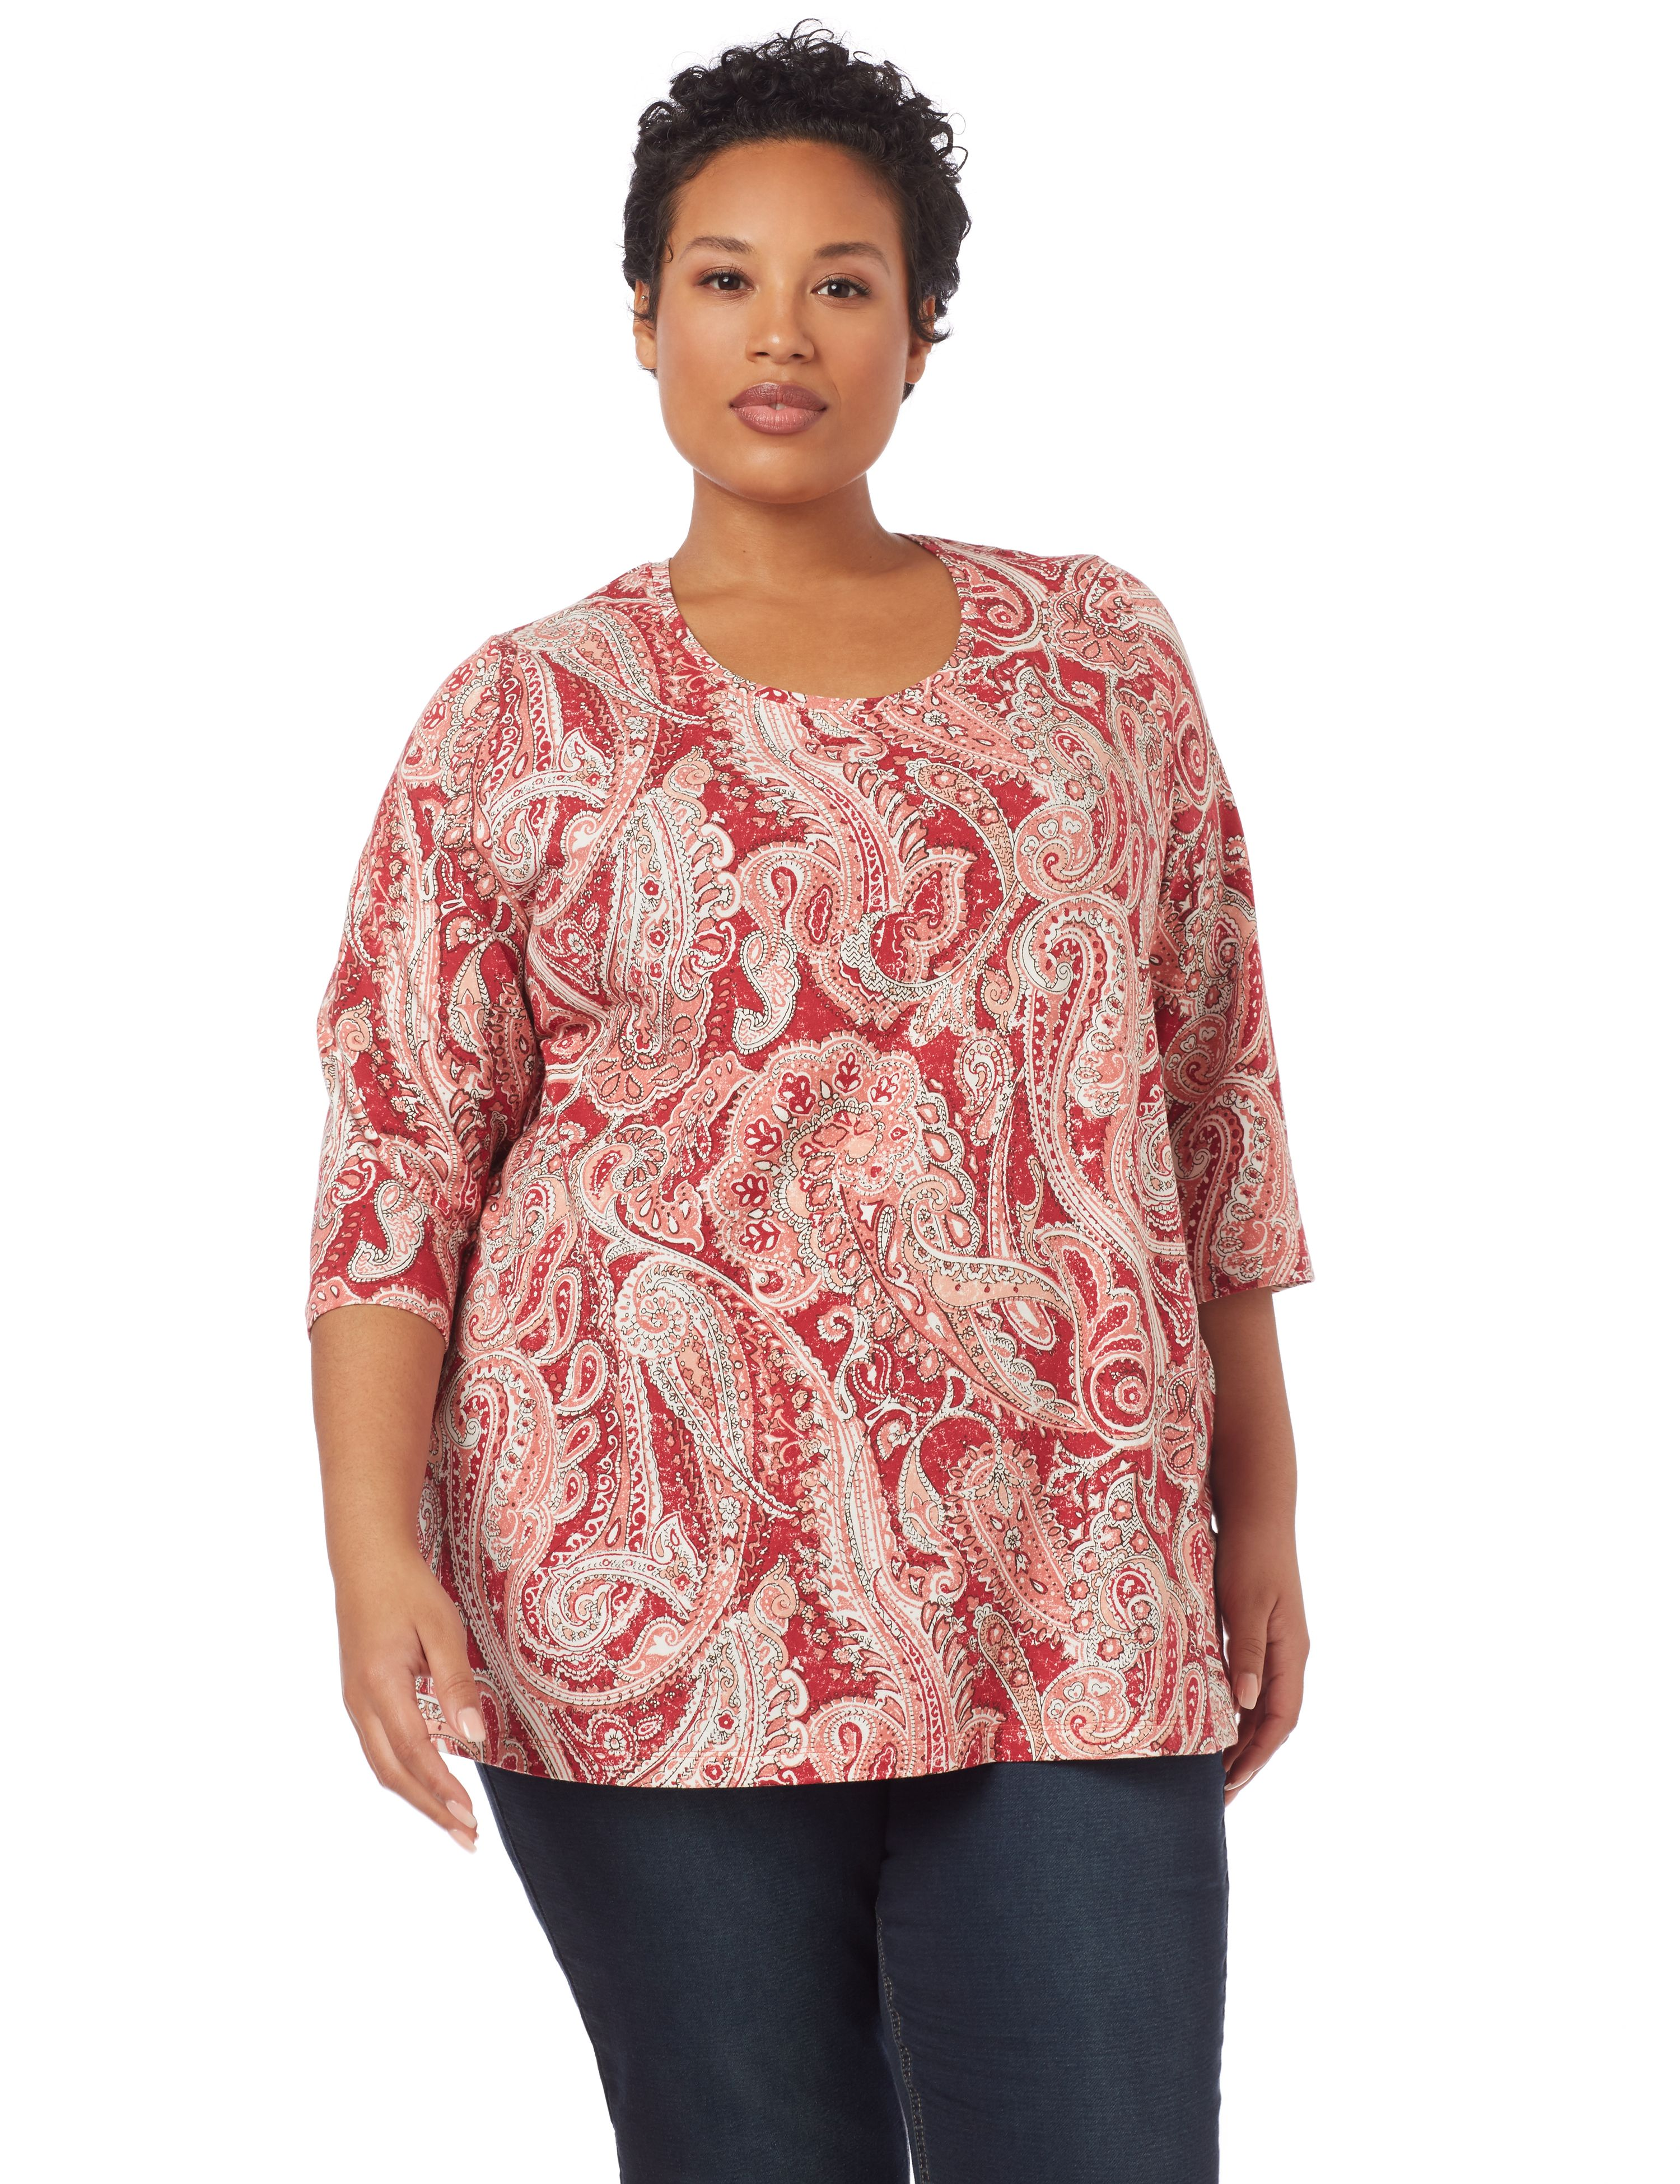 Paisley Dream 3/4-Sleeve Top 1091106 A/O PAISLEY PRINT MP-300094683